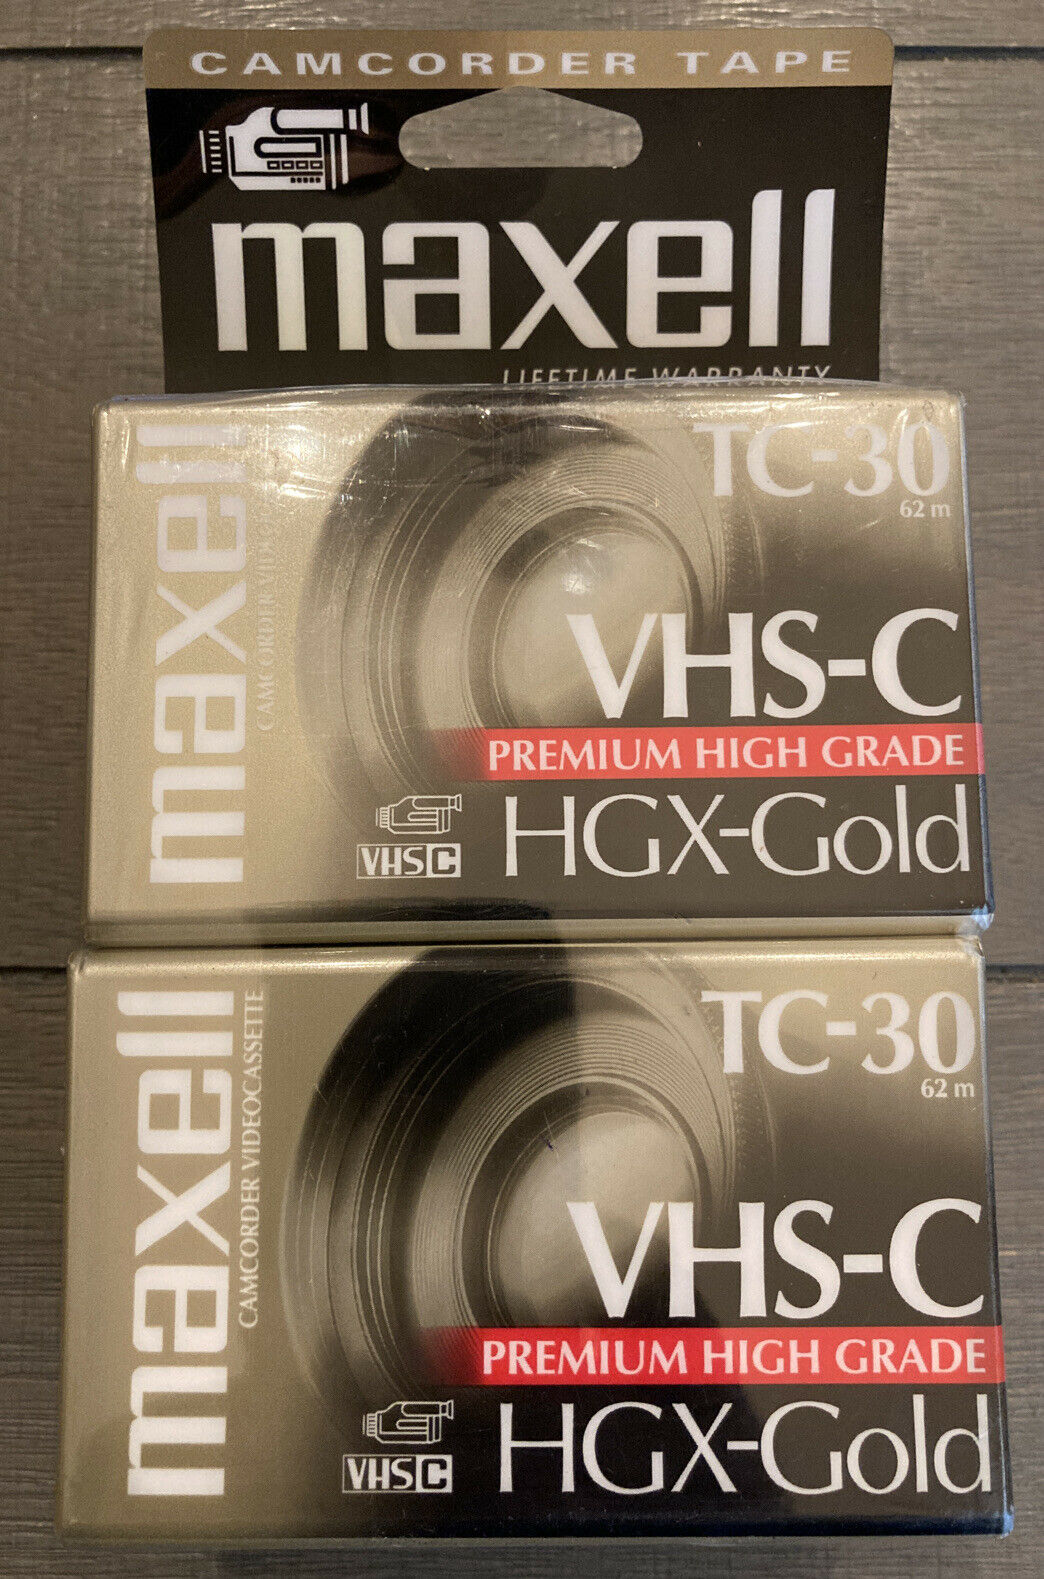 New Maxell Camcorder Video Cassettes 4 Pack VHS-C Tapes TC-30 HGX-Gold